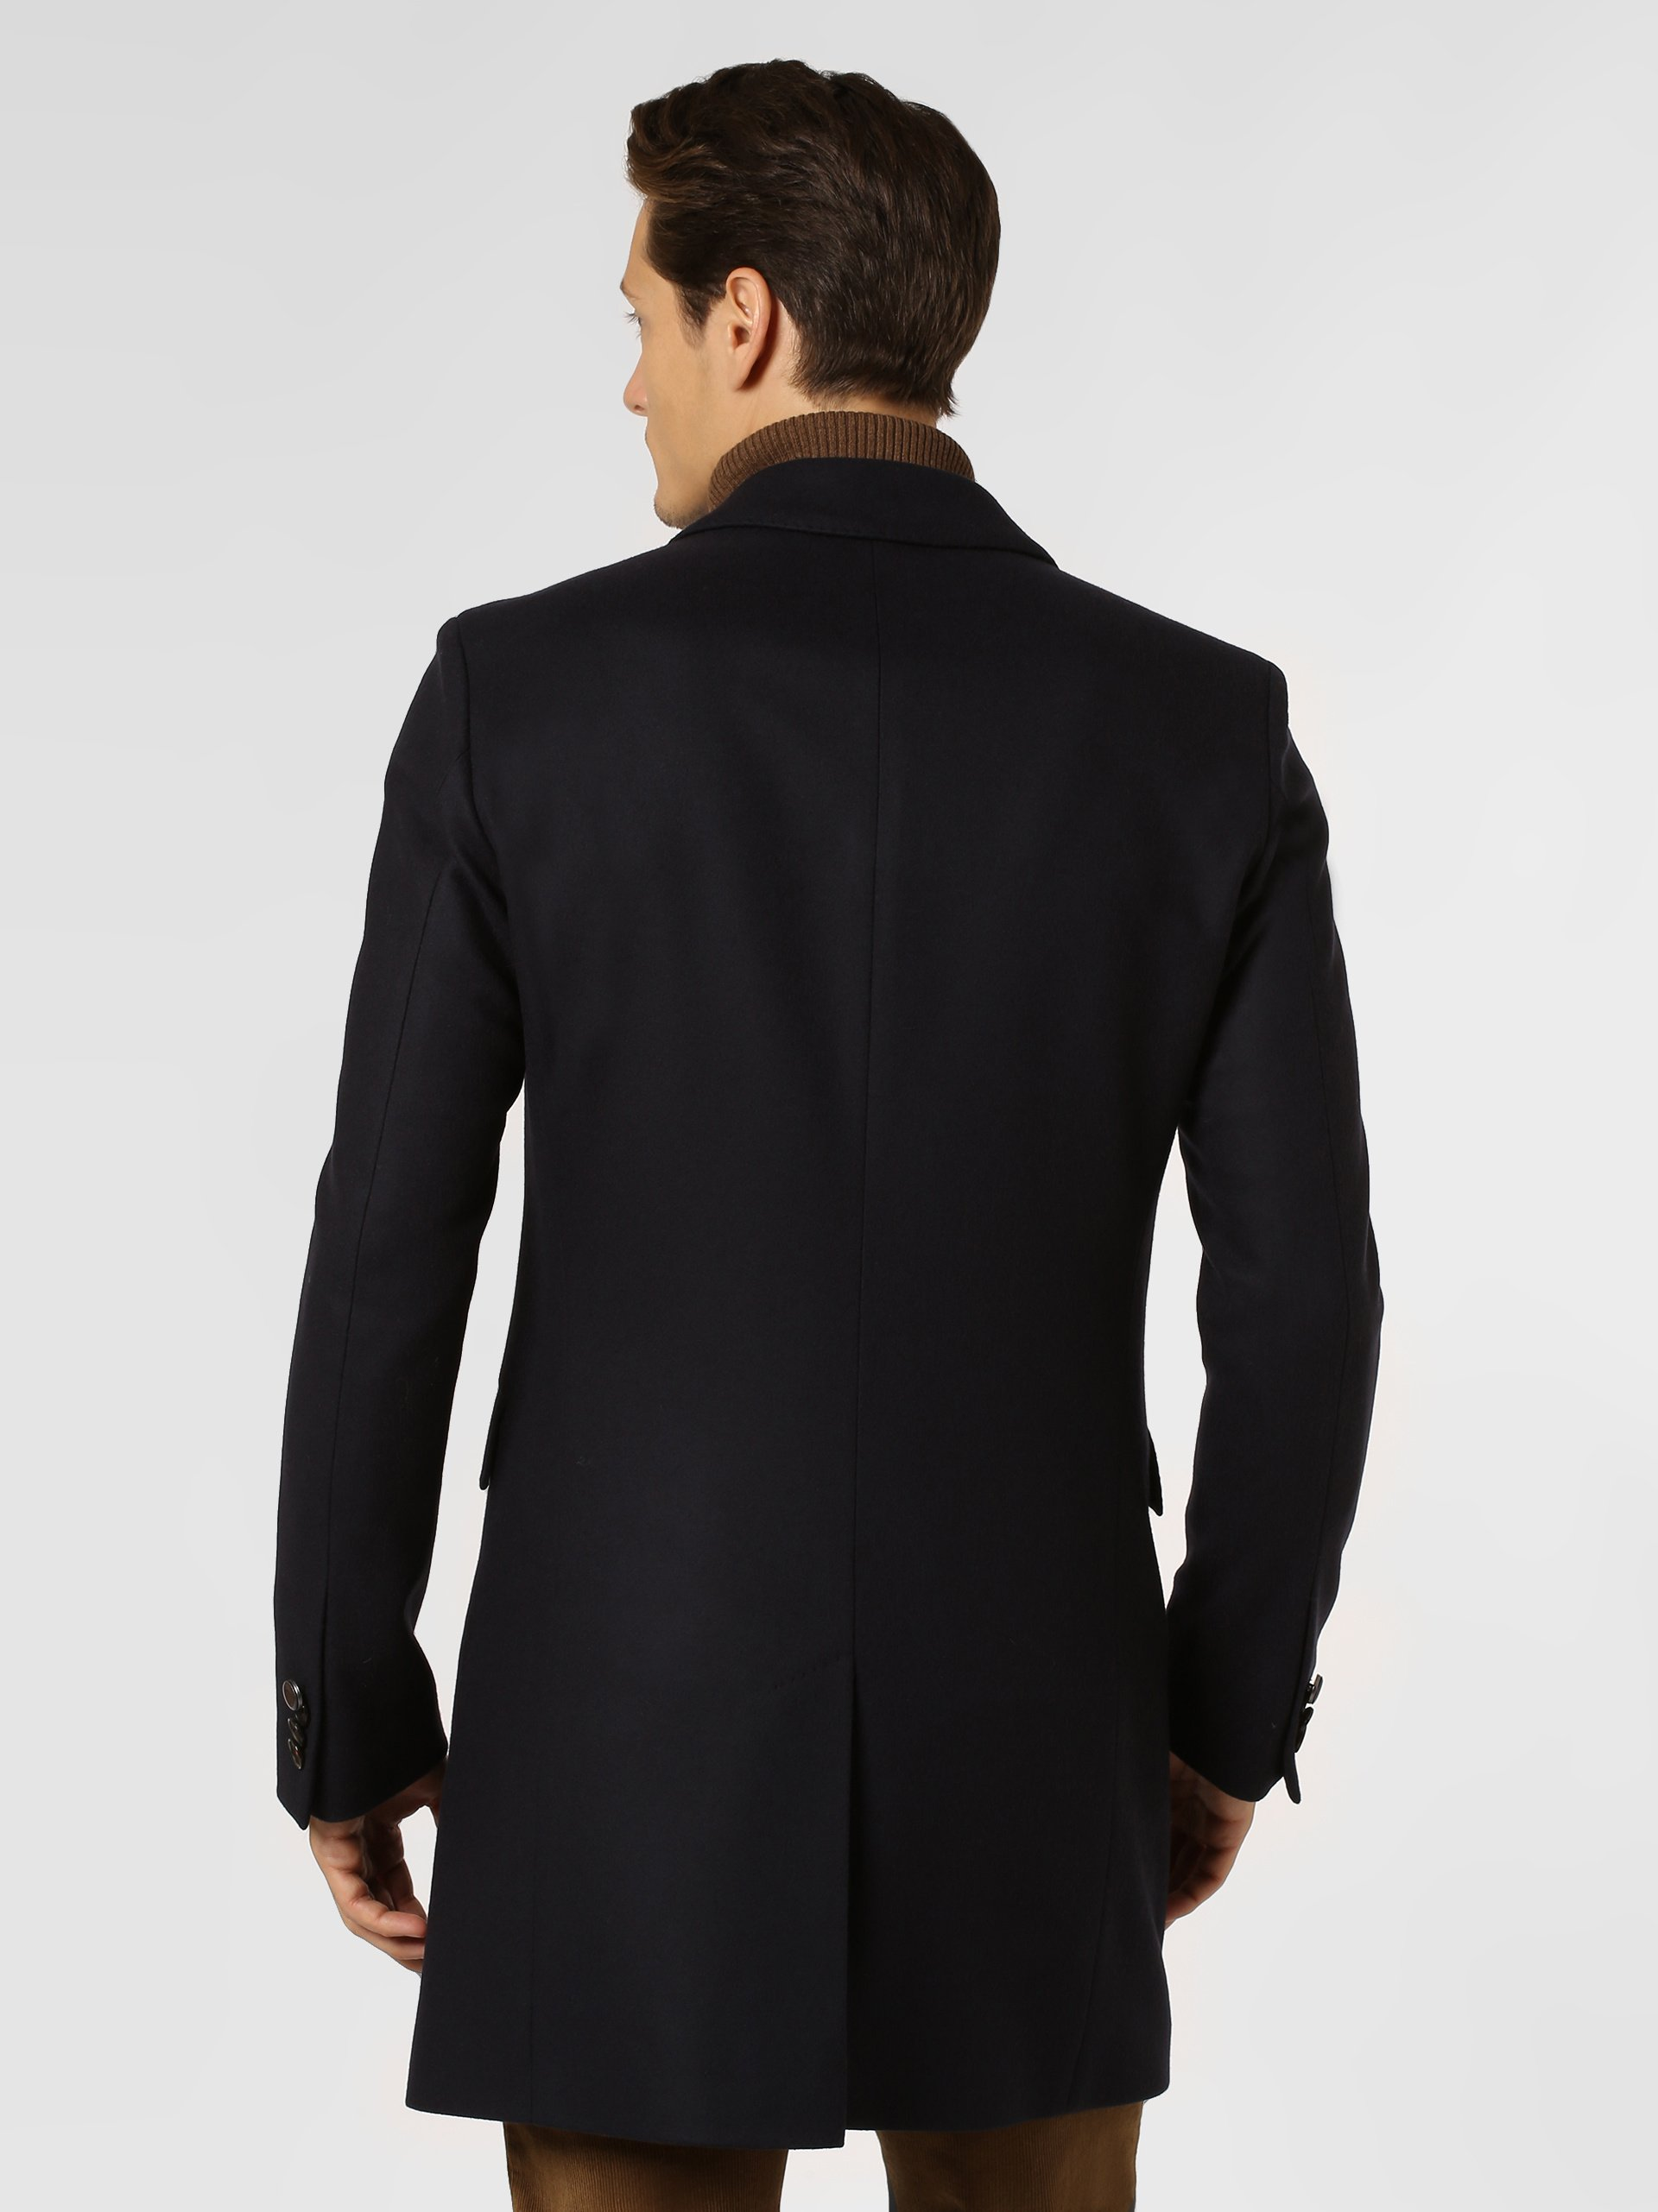 Savile Row Herren Mantel mit Cashmere-Anteil - Major